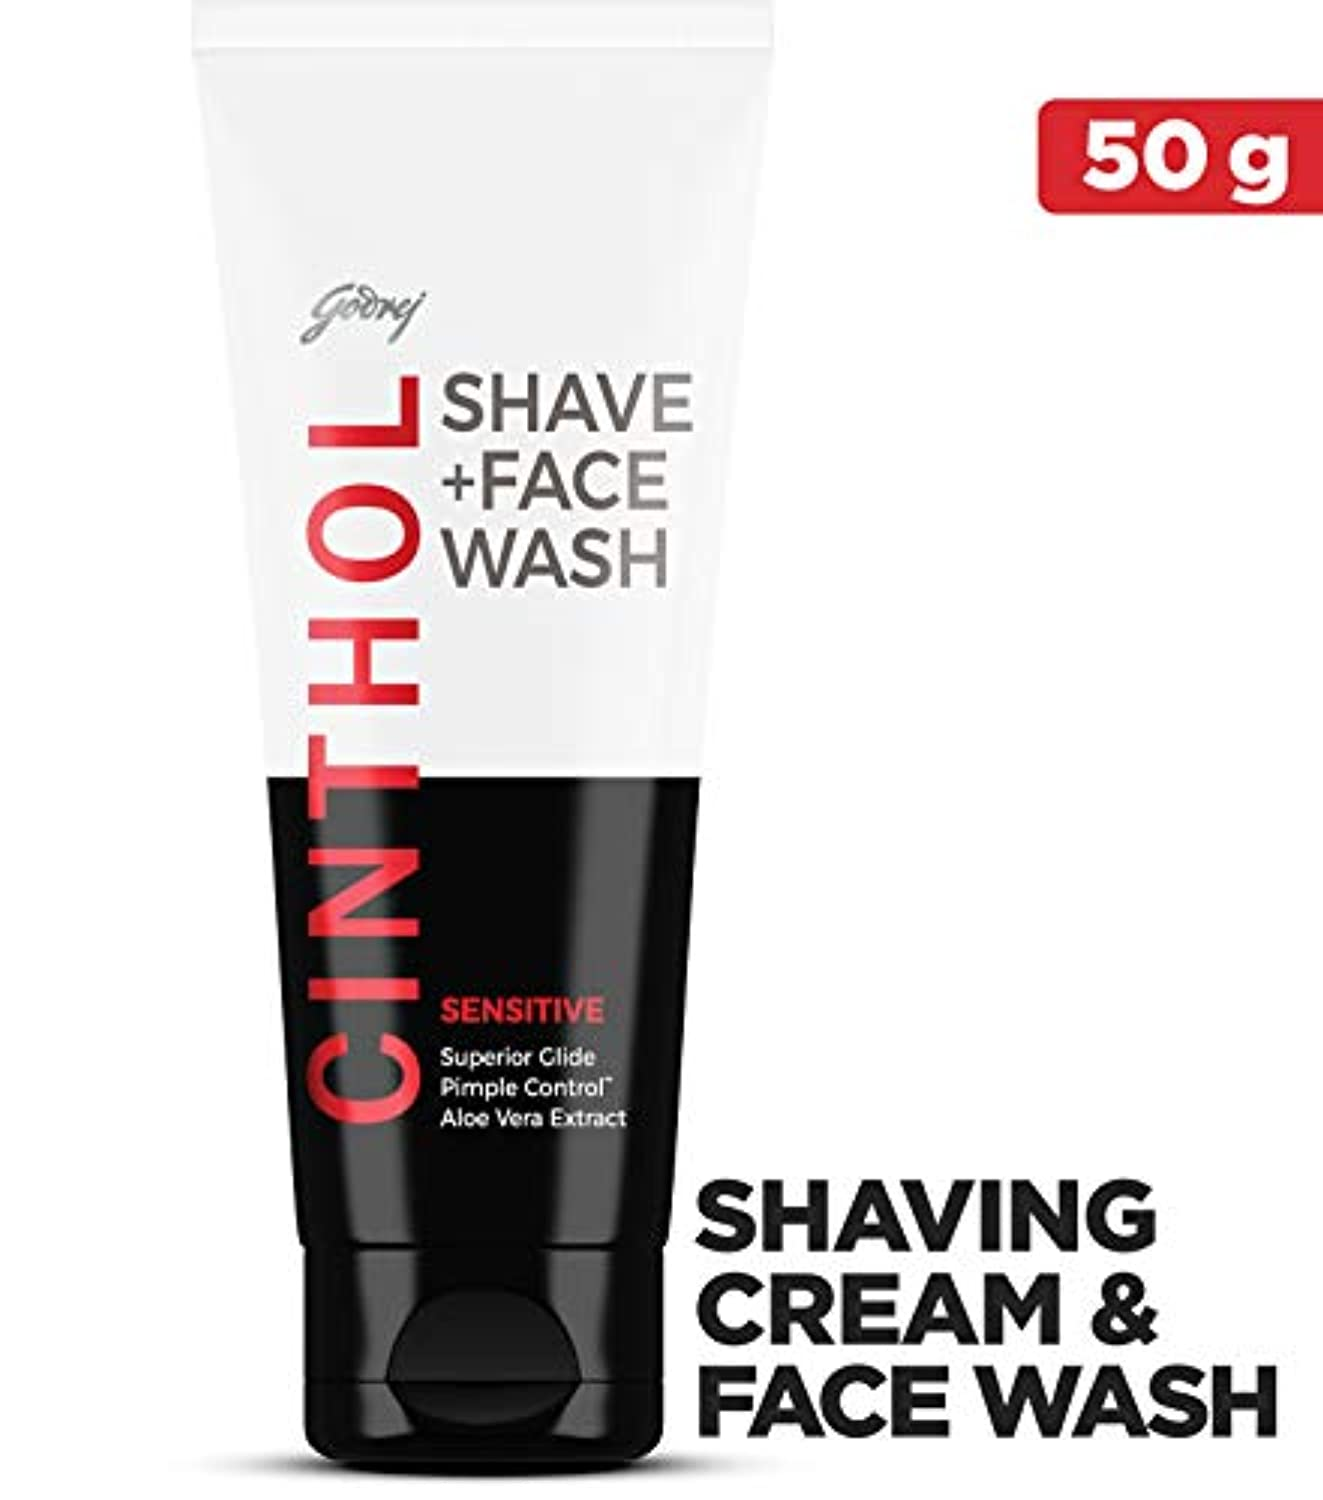 狂気旅客ボルトCinthol Sensitive Shaving + Face Wash, 50g